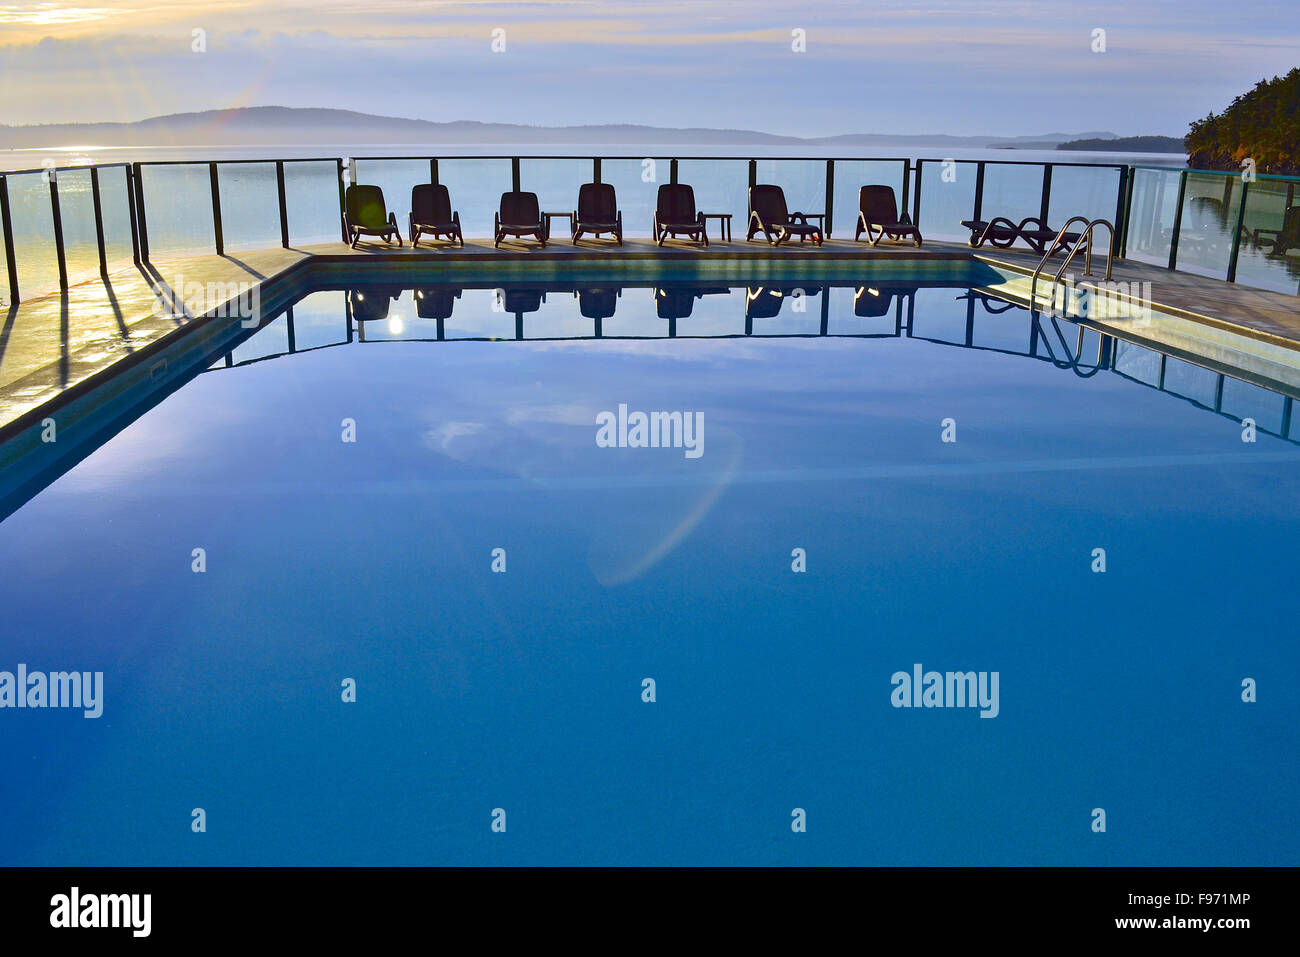 A horizontal image of an outdoor swimming pool with a line of chairs at a vacation resort on Vancouver Island B.C. - Stock Image